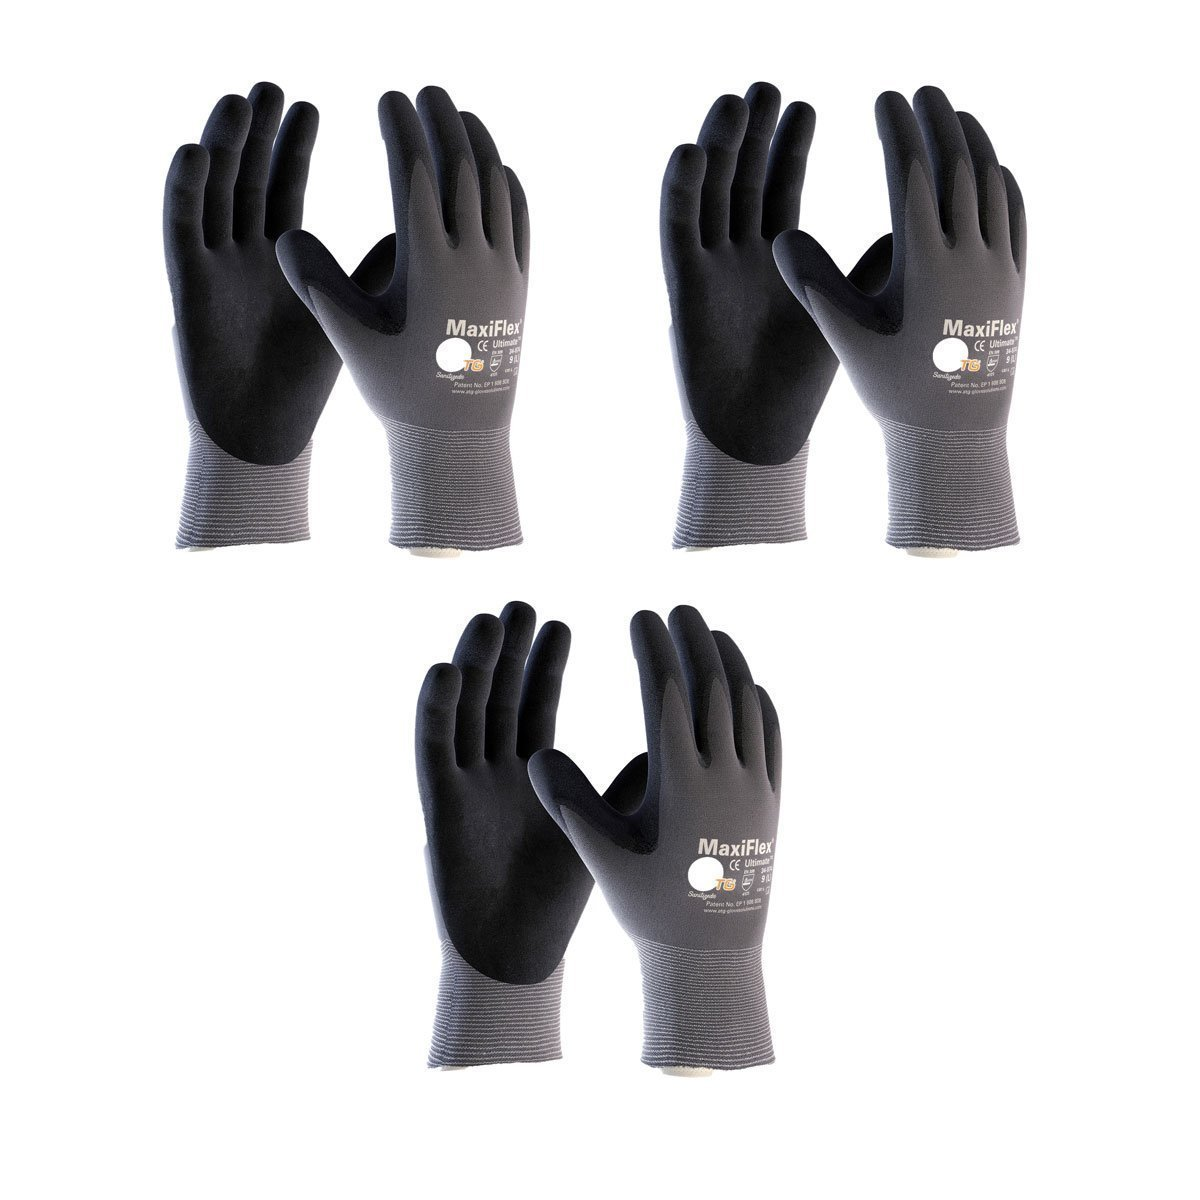 Maxiflex 34 874 Ultimate Nitrile Gloves